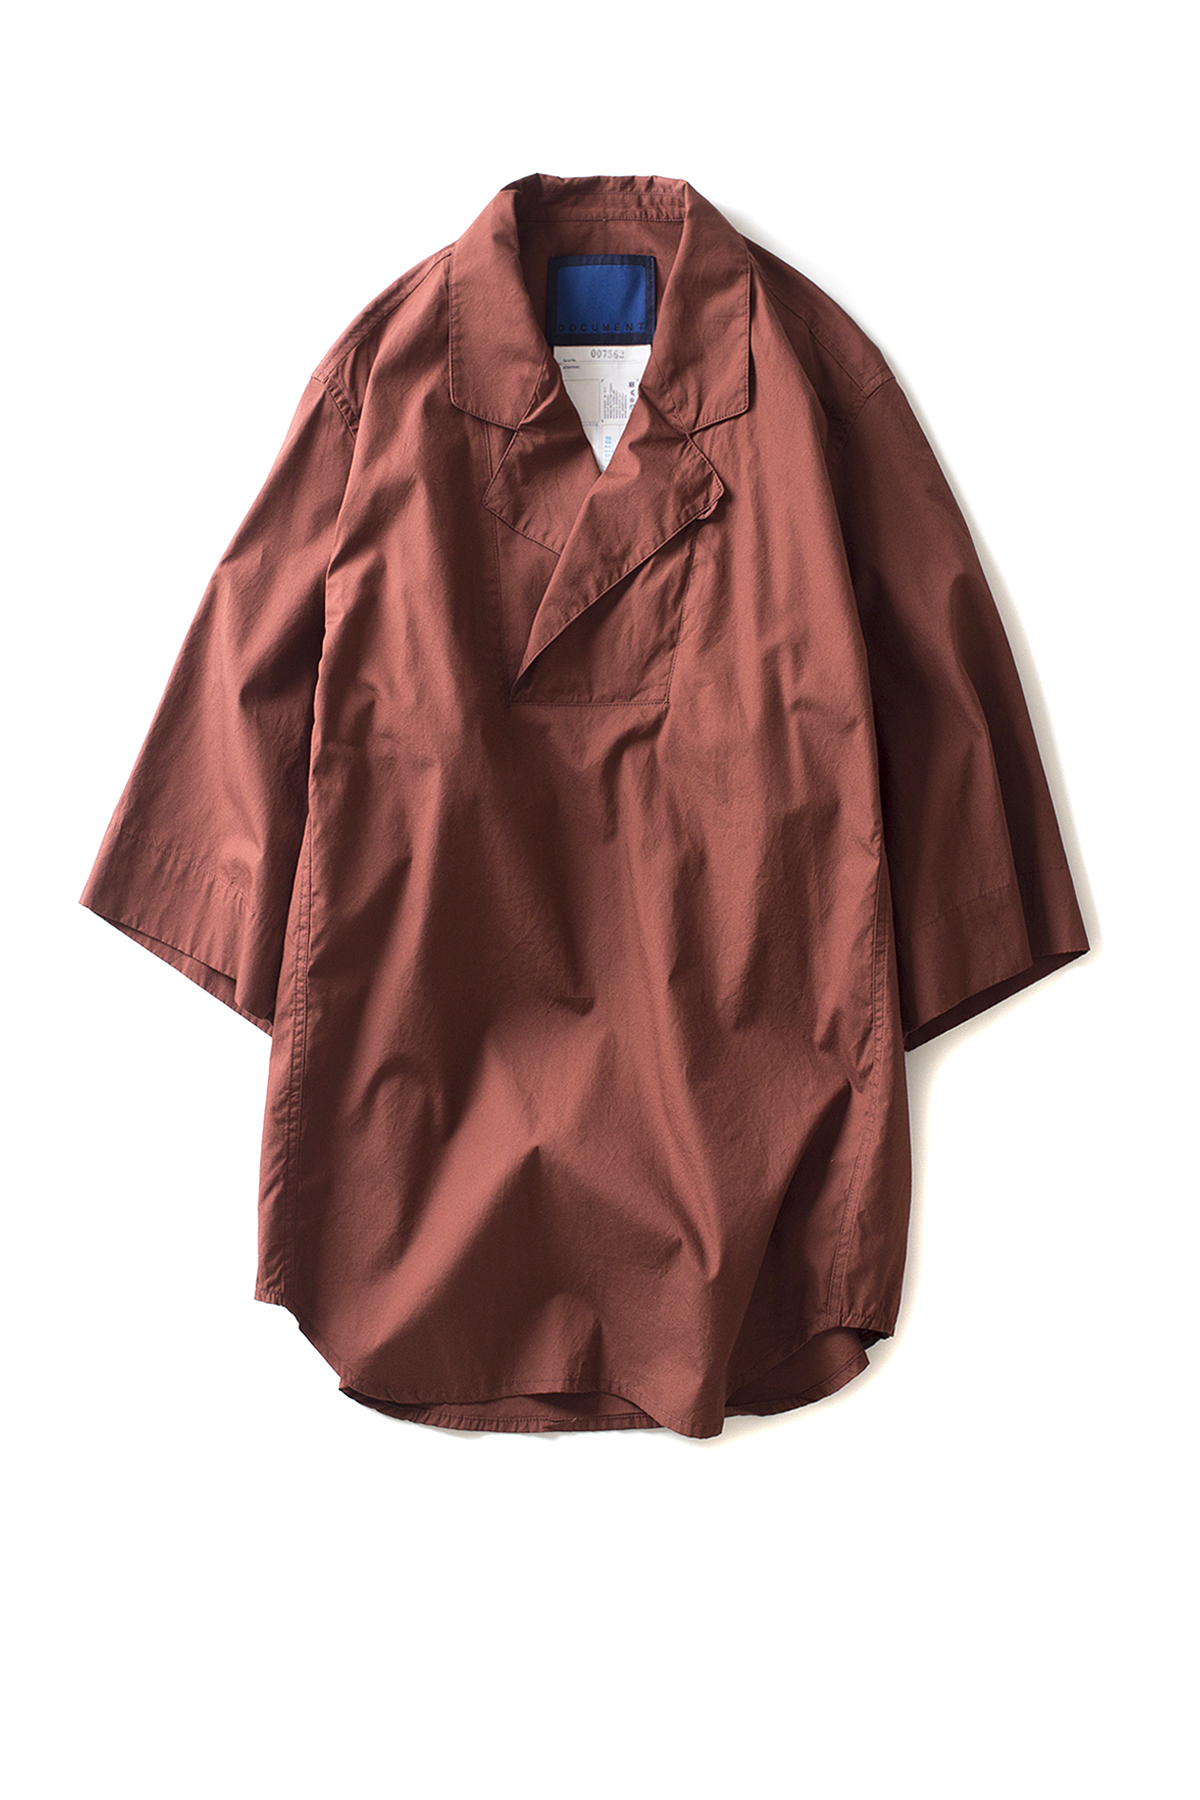 Document : Fine Cotton Safari Shirt (Brown)